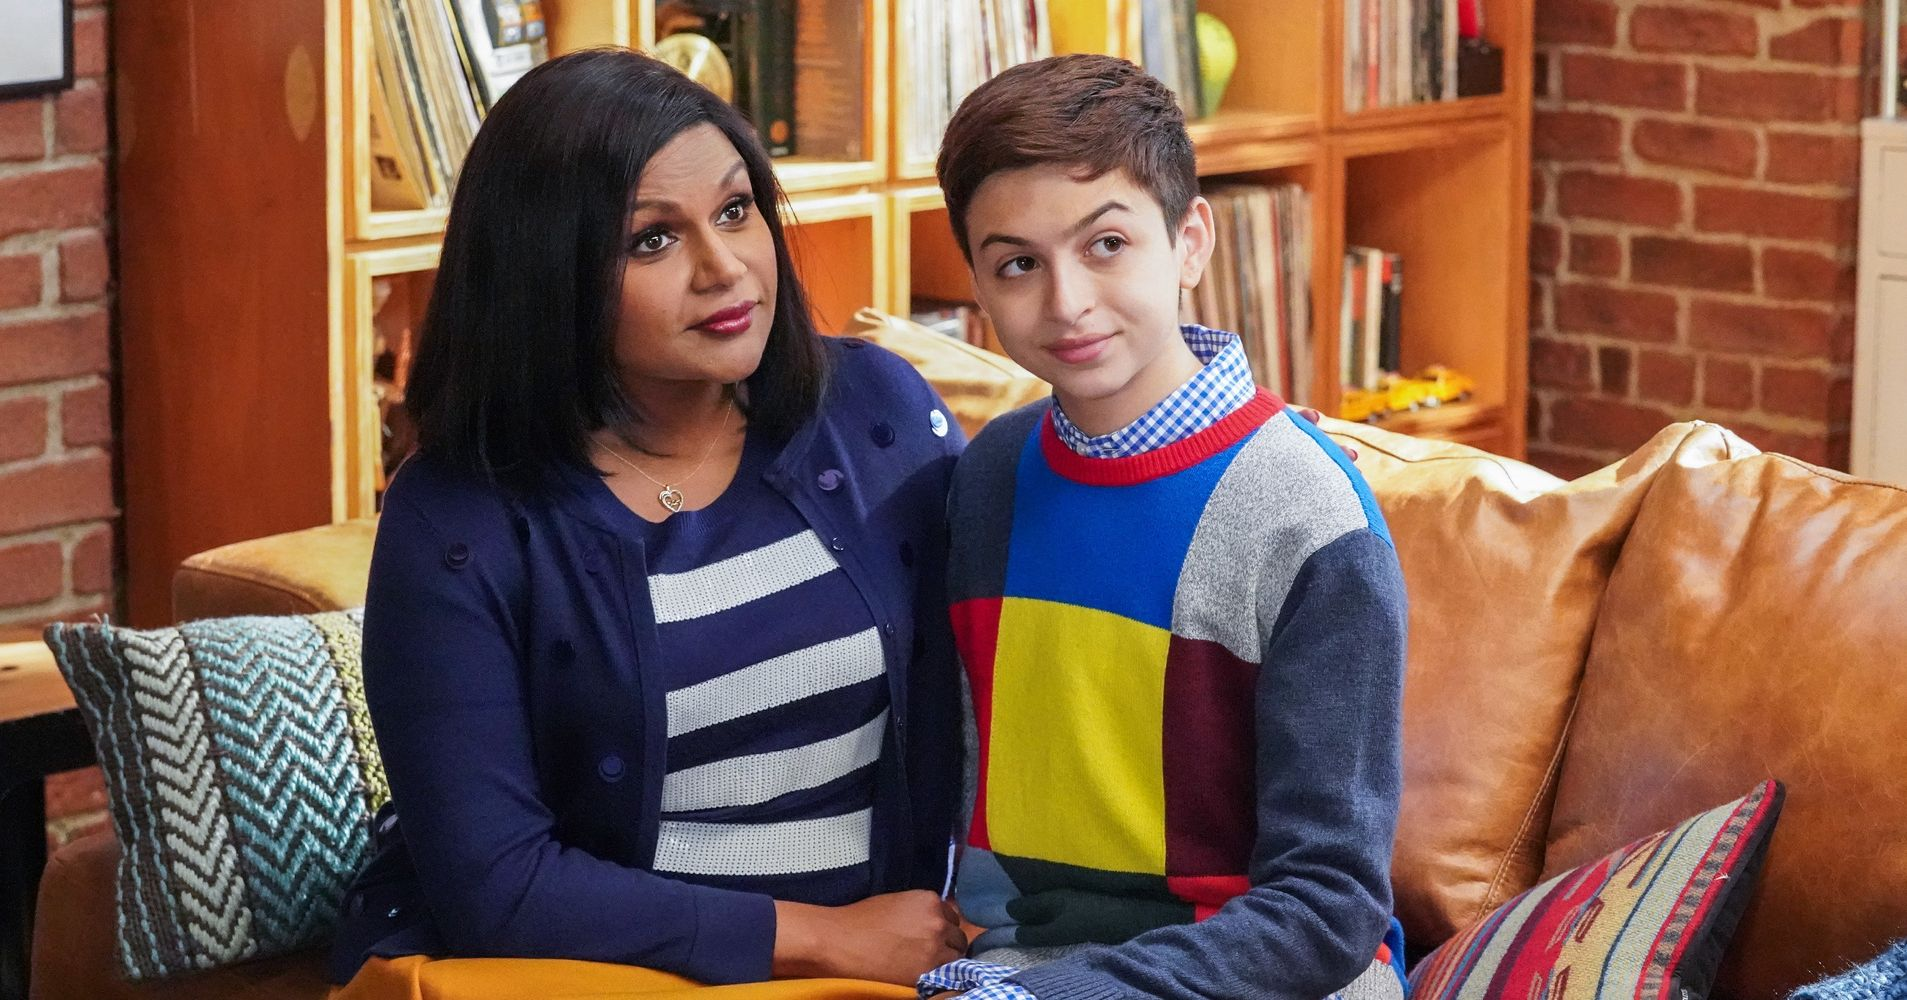 Champions Star Josie Totah Comes Out As Transgender In -7499